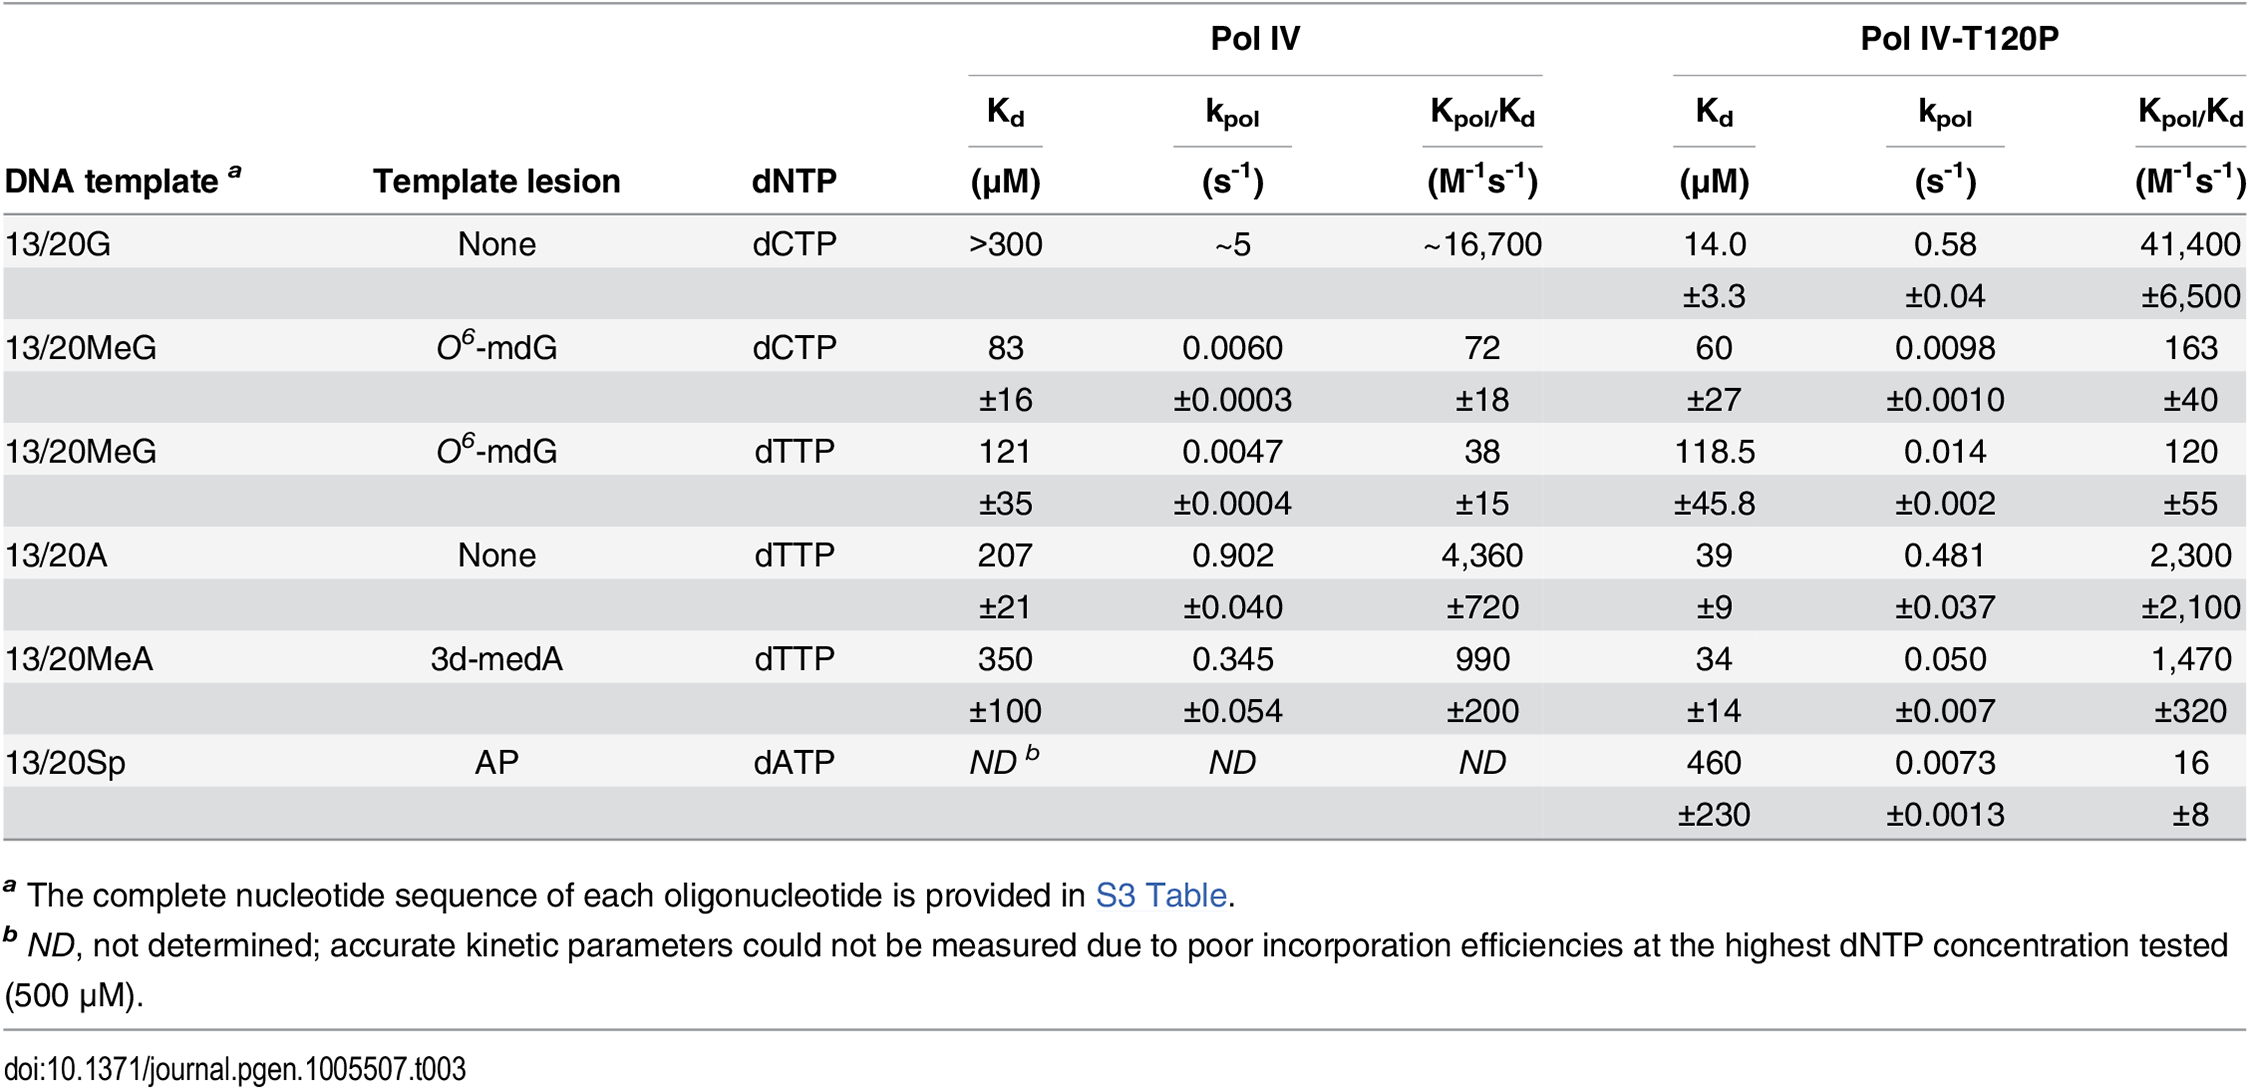 Kinetic constants for wild type Pol IV and Pol IV-T120P nucleotide incorporation.